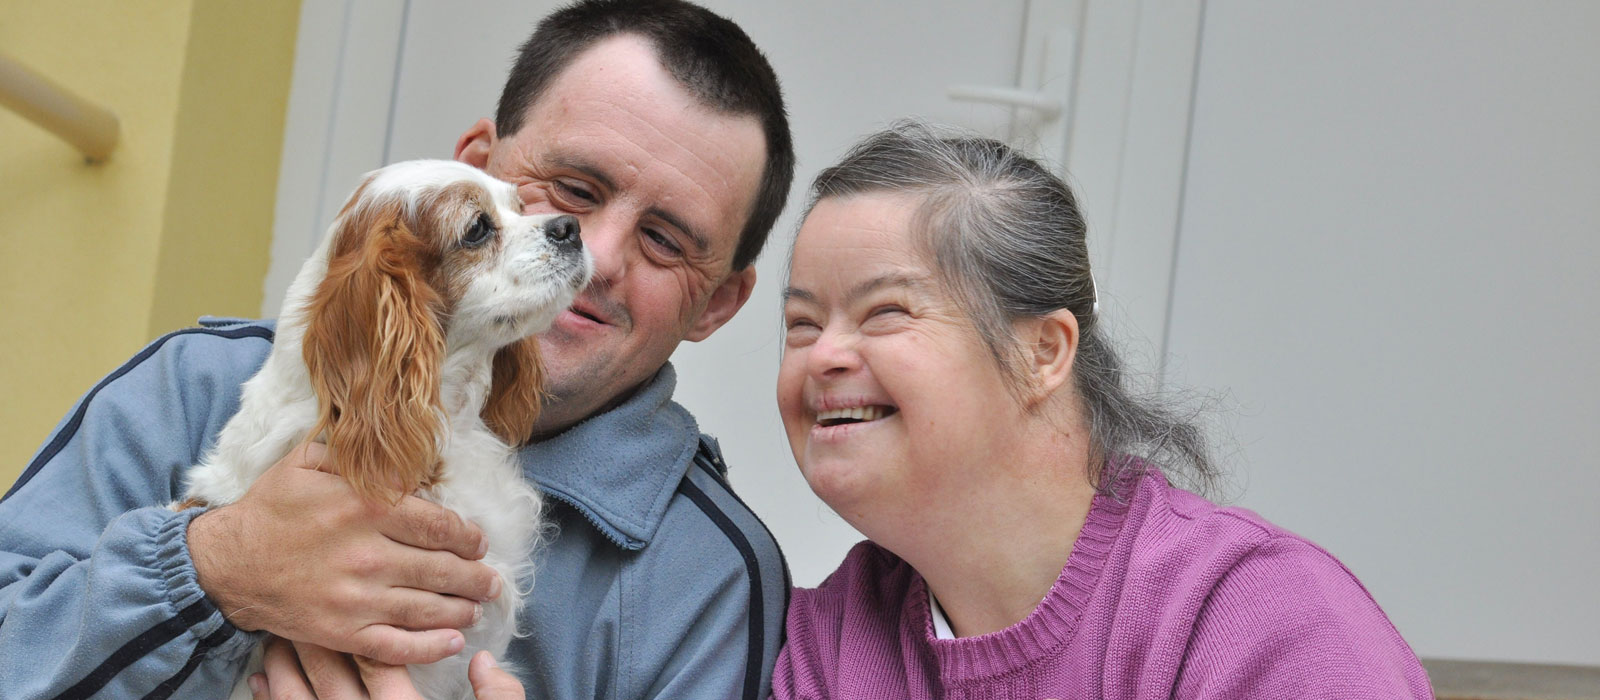 A Woman And A Man With A Down Sydrome Playing With The Puppy - Home Care Sydney - ESP Healthcare